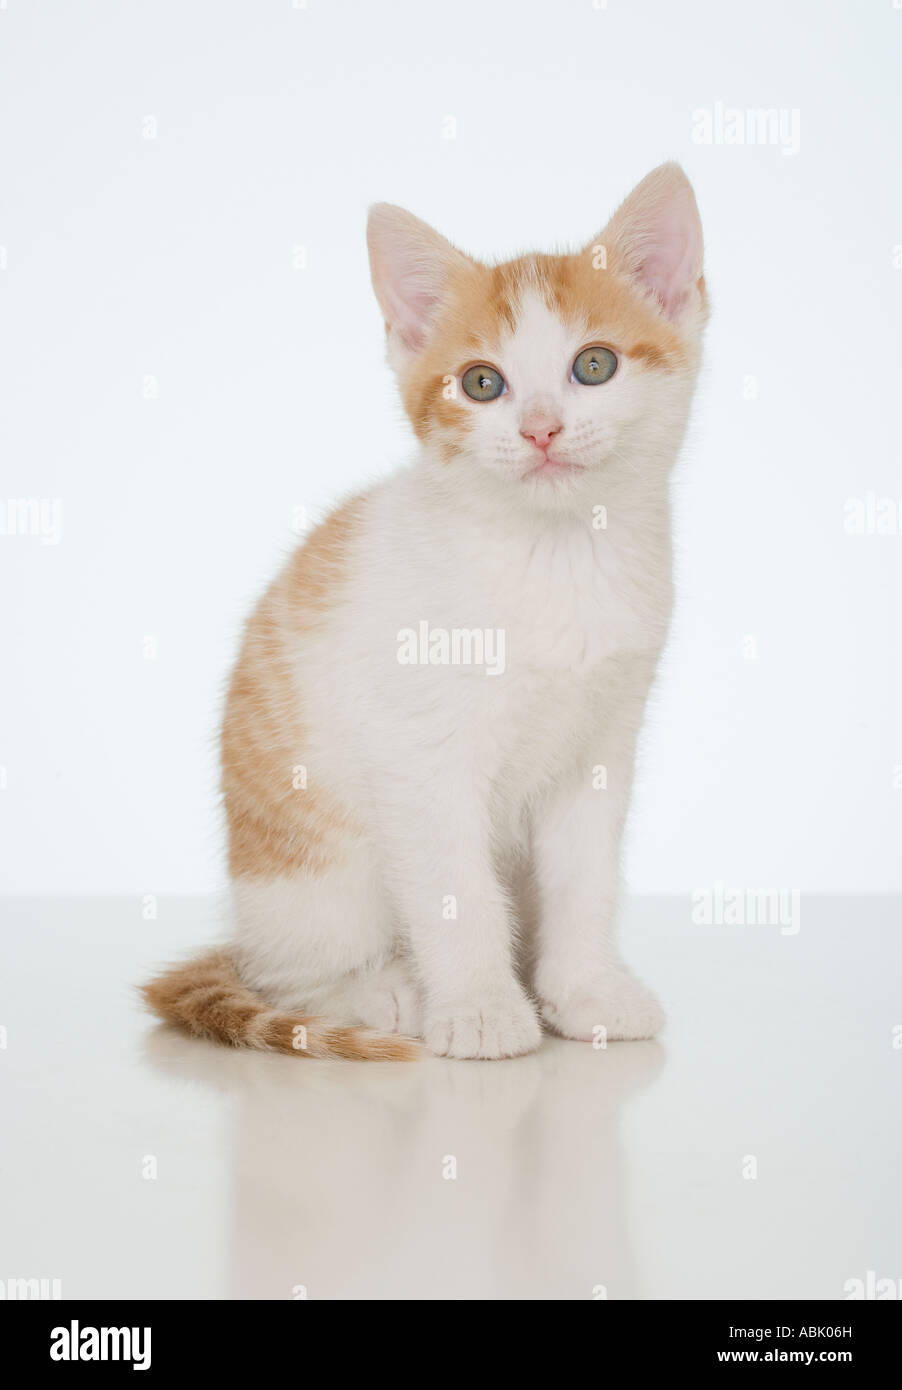 Studio shot of kitten - Stock Image